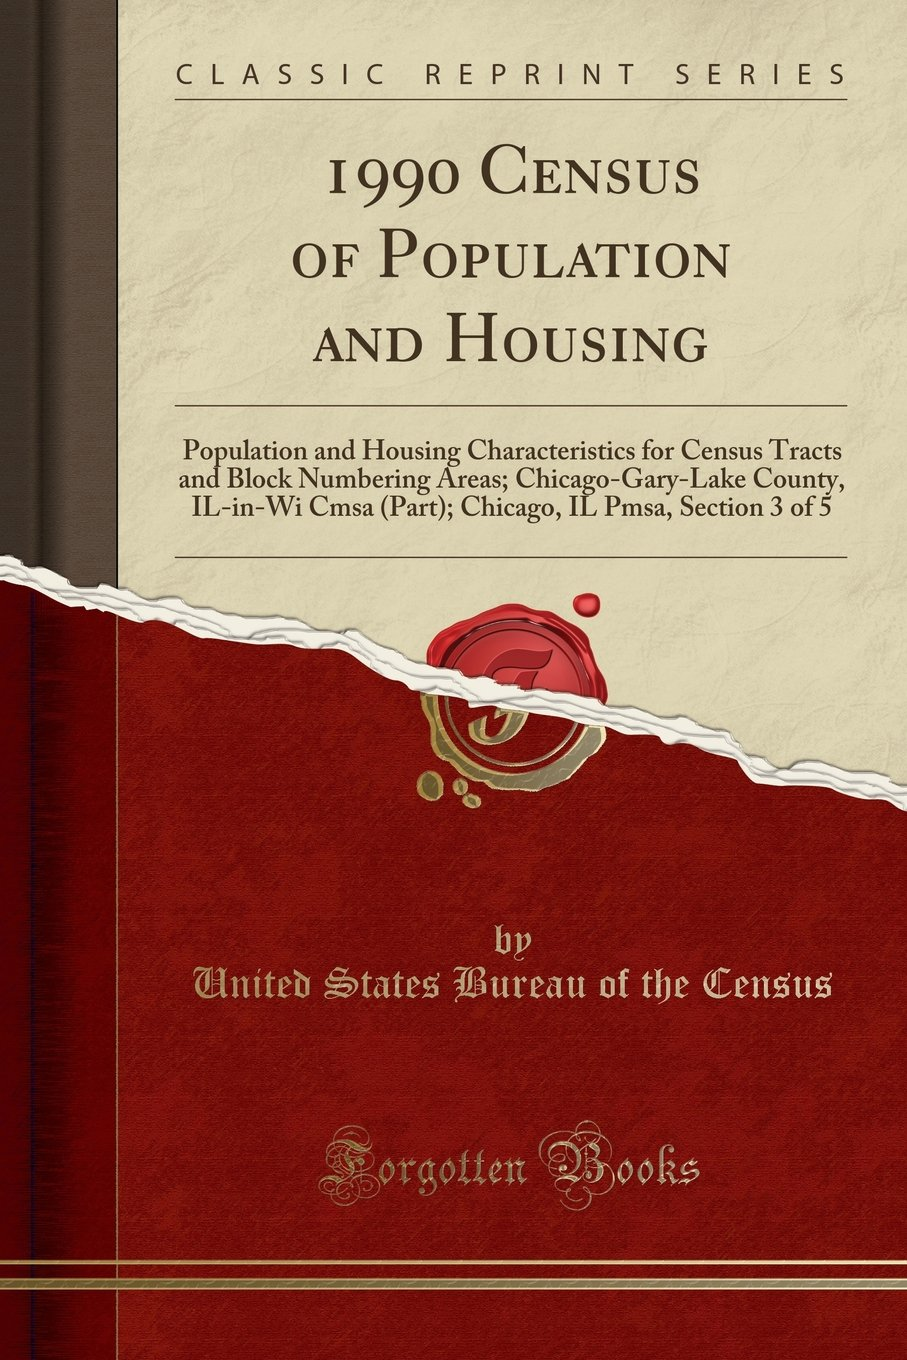 1990 Census of Population and Housing: Population and Housing Characteristics for Census Tracts and Block Numbering Areas; Chicago-Gary-Lake County, ... IL Pmsa, Section 3 of 5 (Classic Reprint) ebook